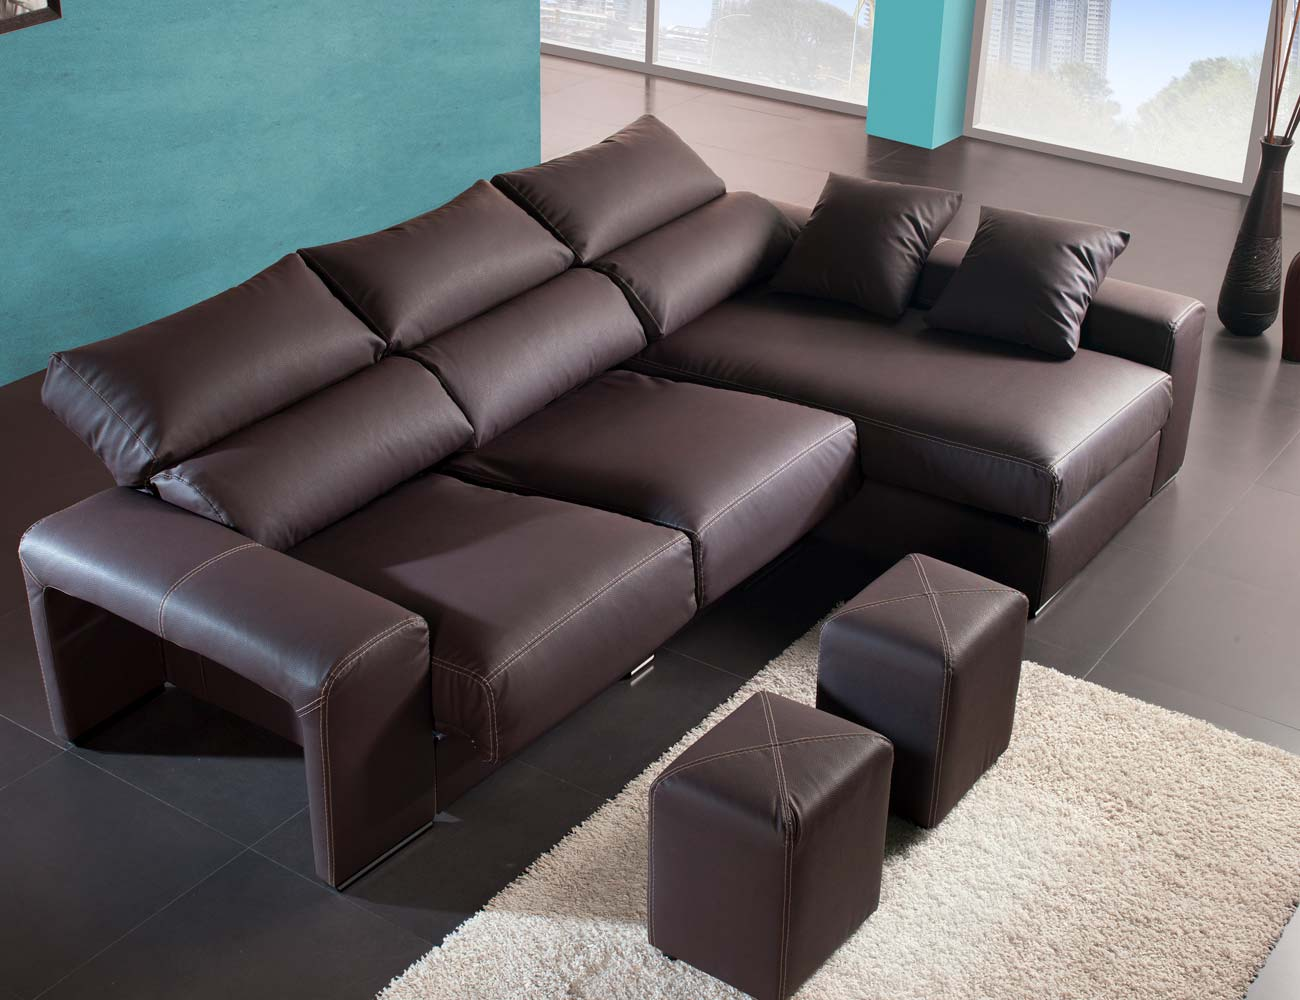 Sofa chaiselongue moderno polipiel chocolate poufs taburetes60